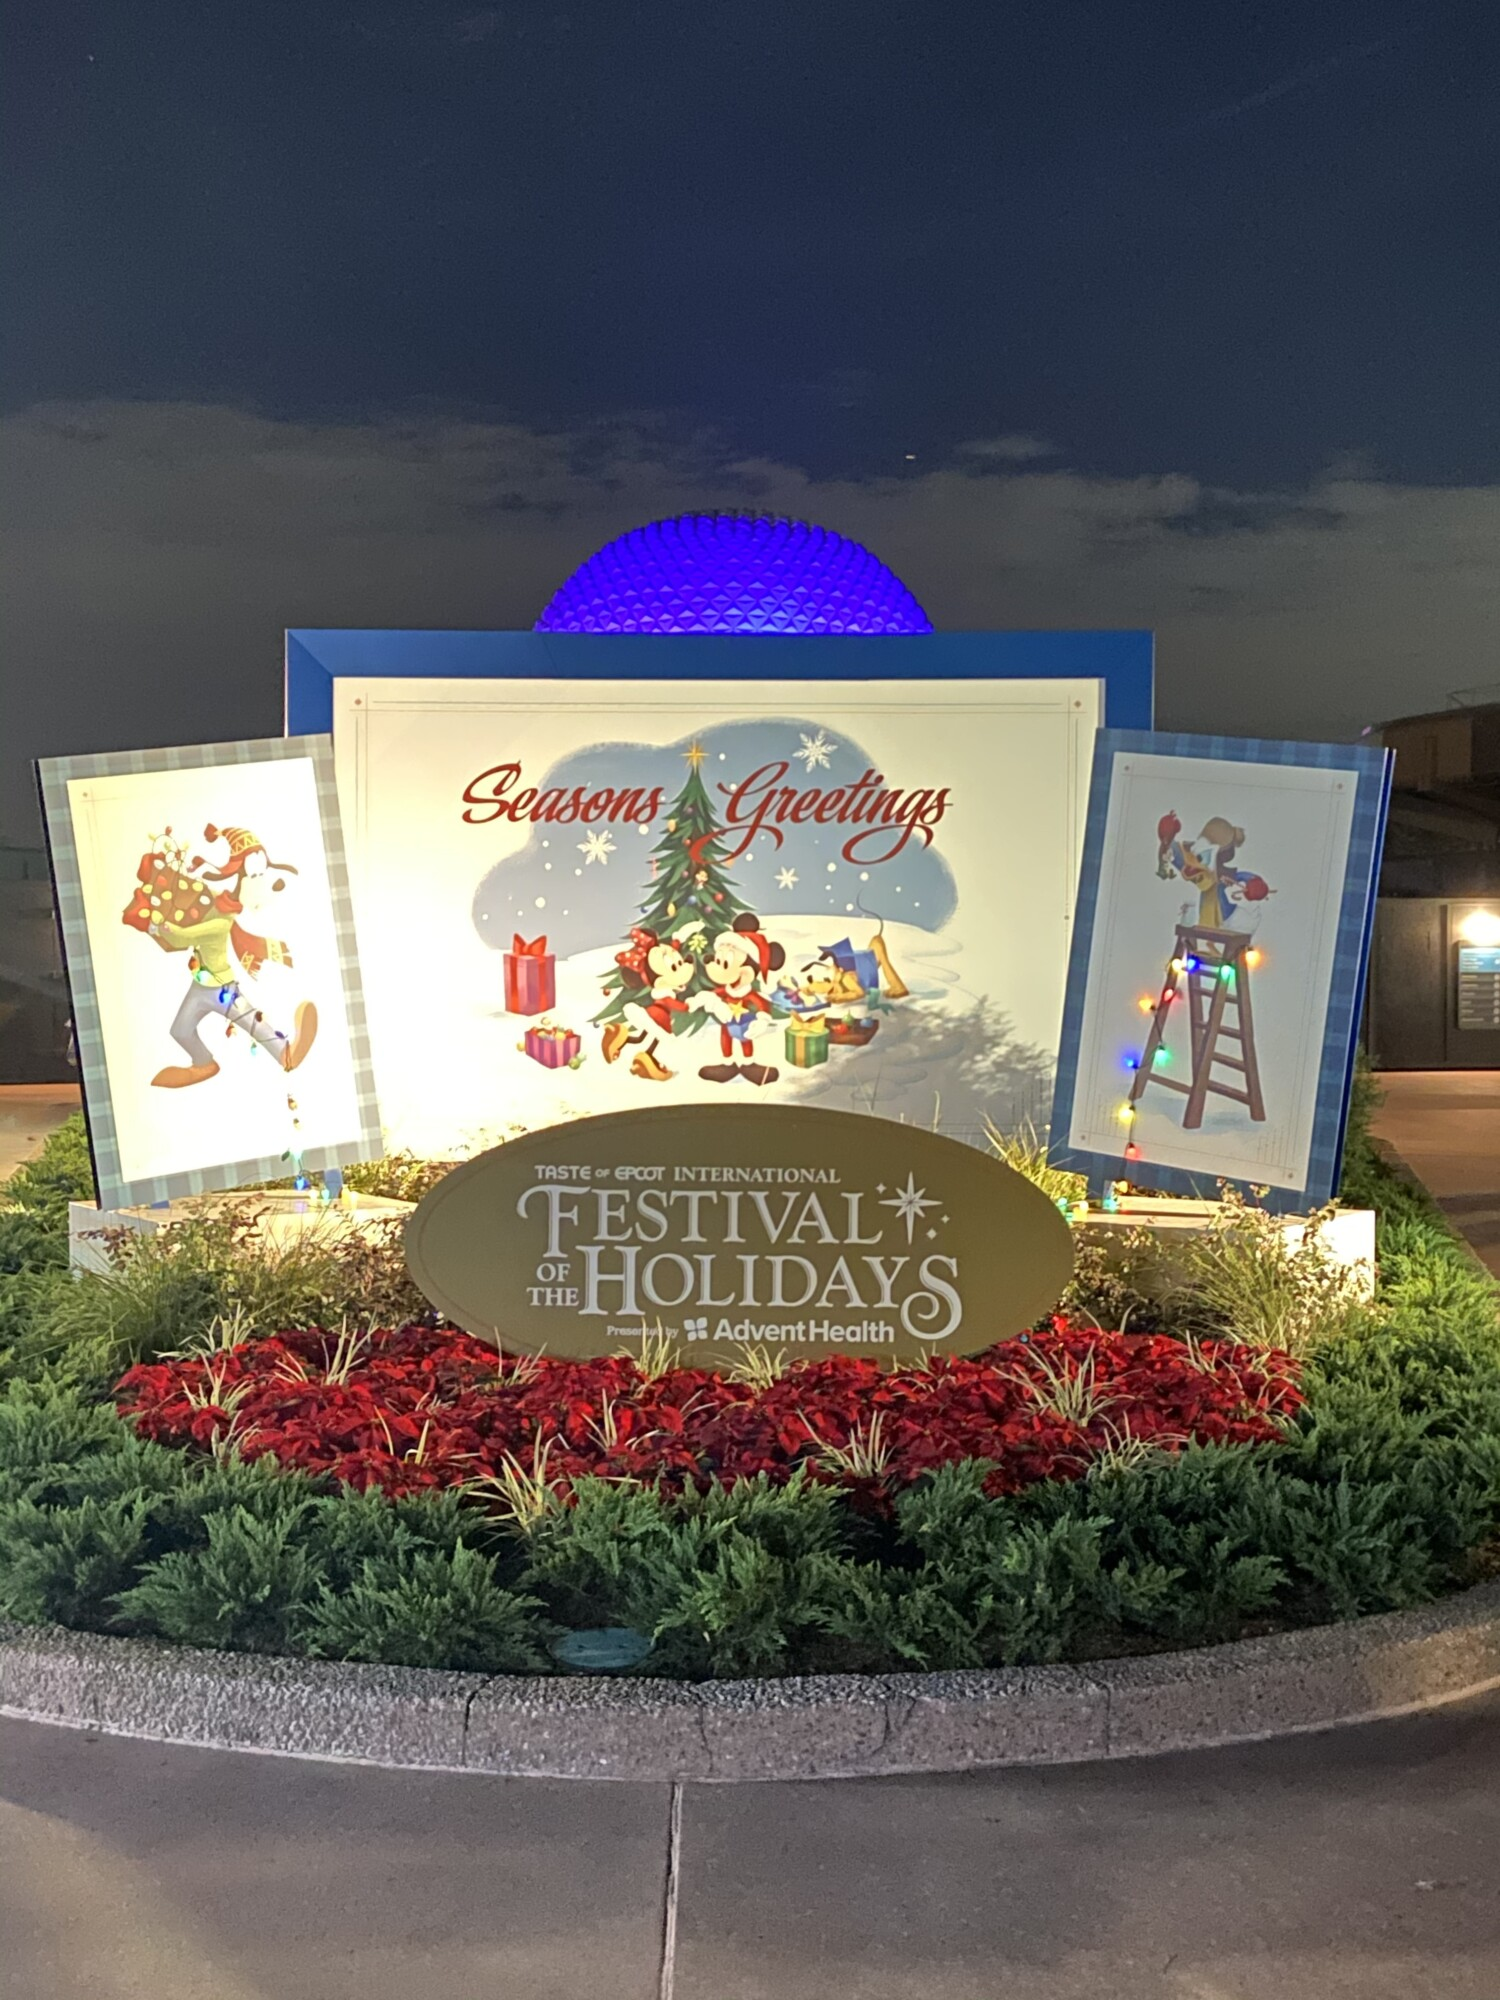 Photos from Opening Weekend at the Epcot International Festival of the Holidays 11